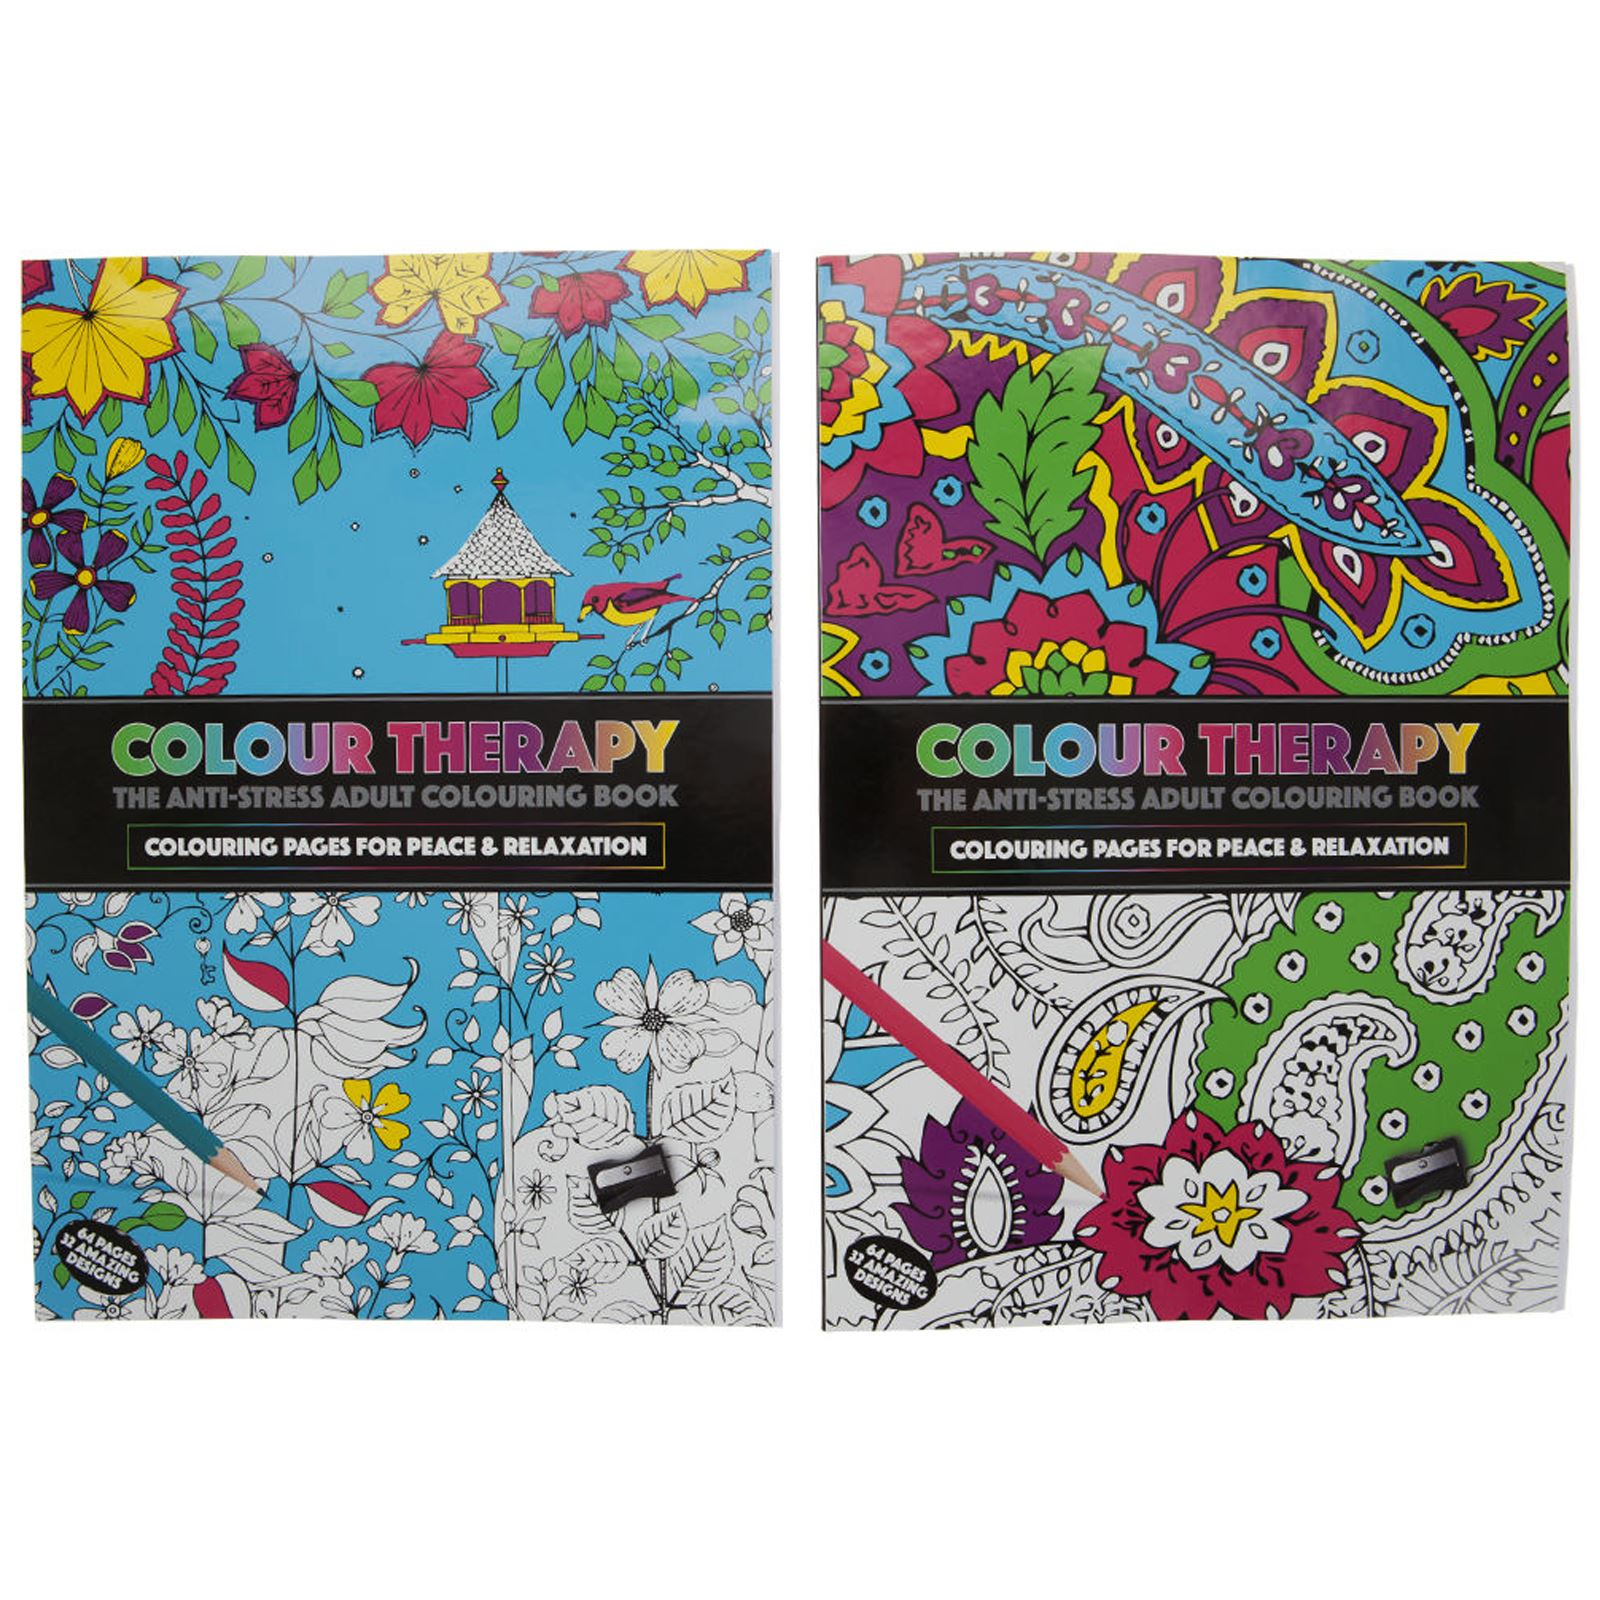 Coloring book for adults ebay - New Anti Stress Colour Therapy Colouring Books Pencils